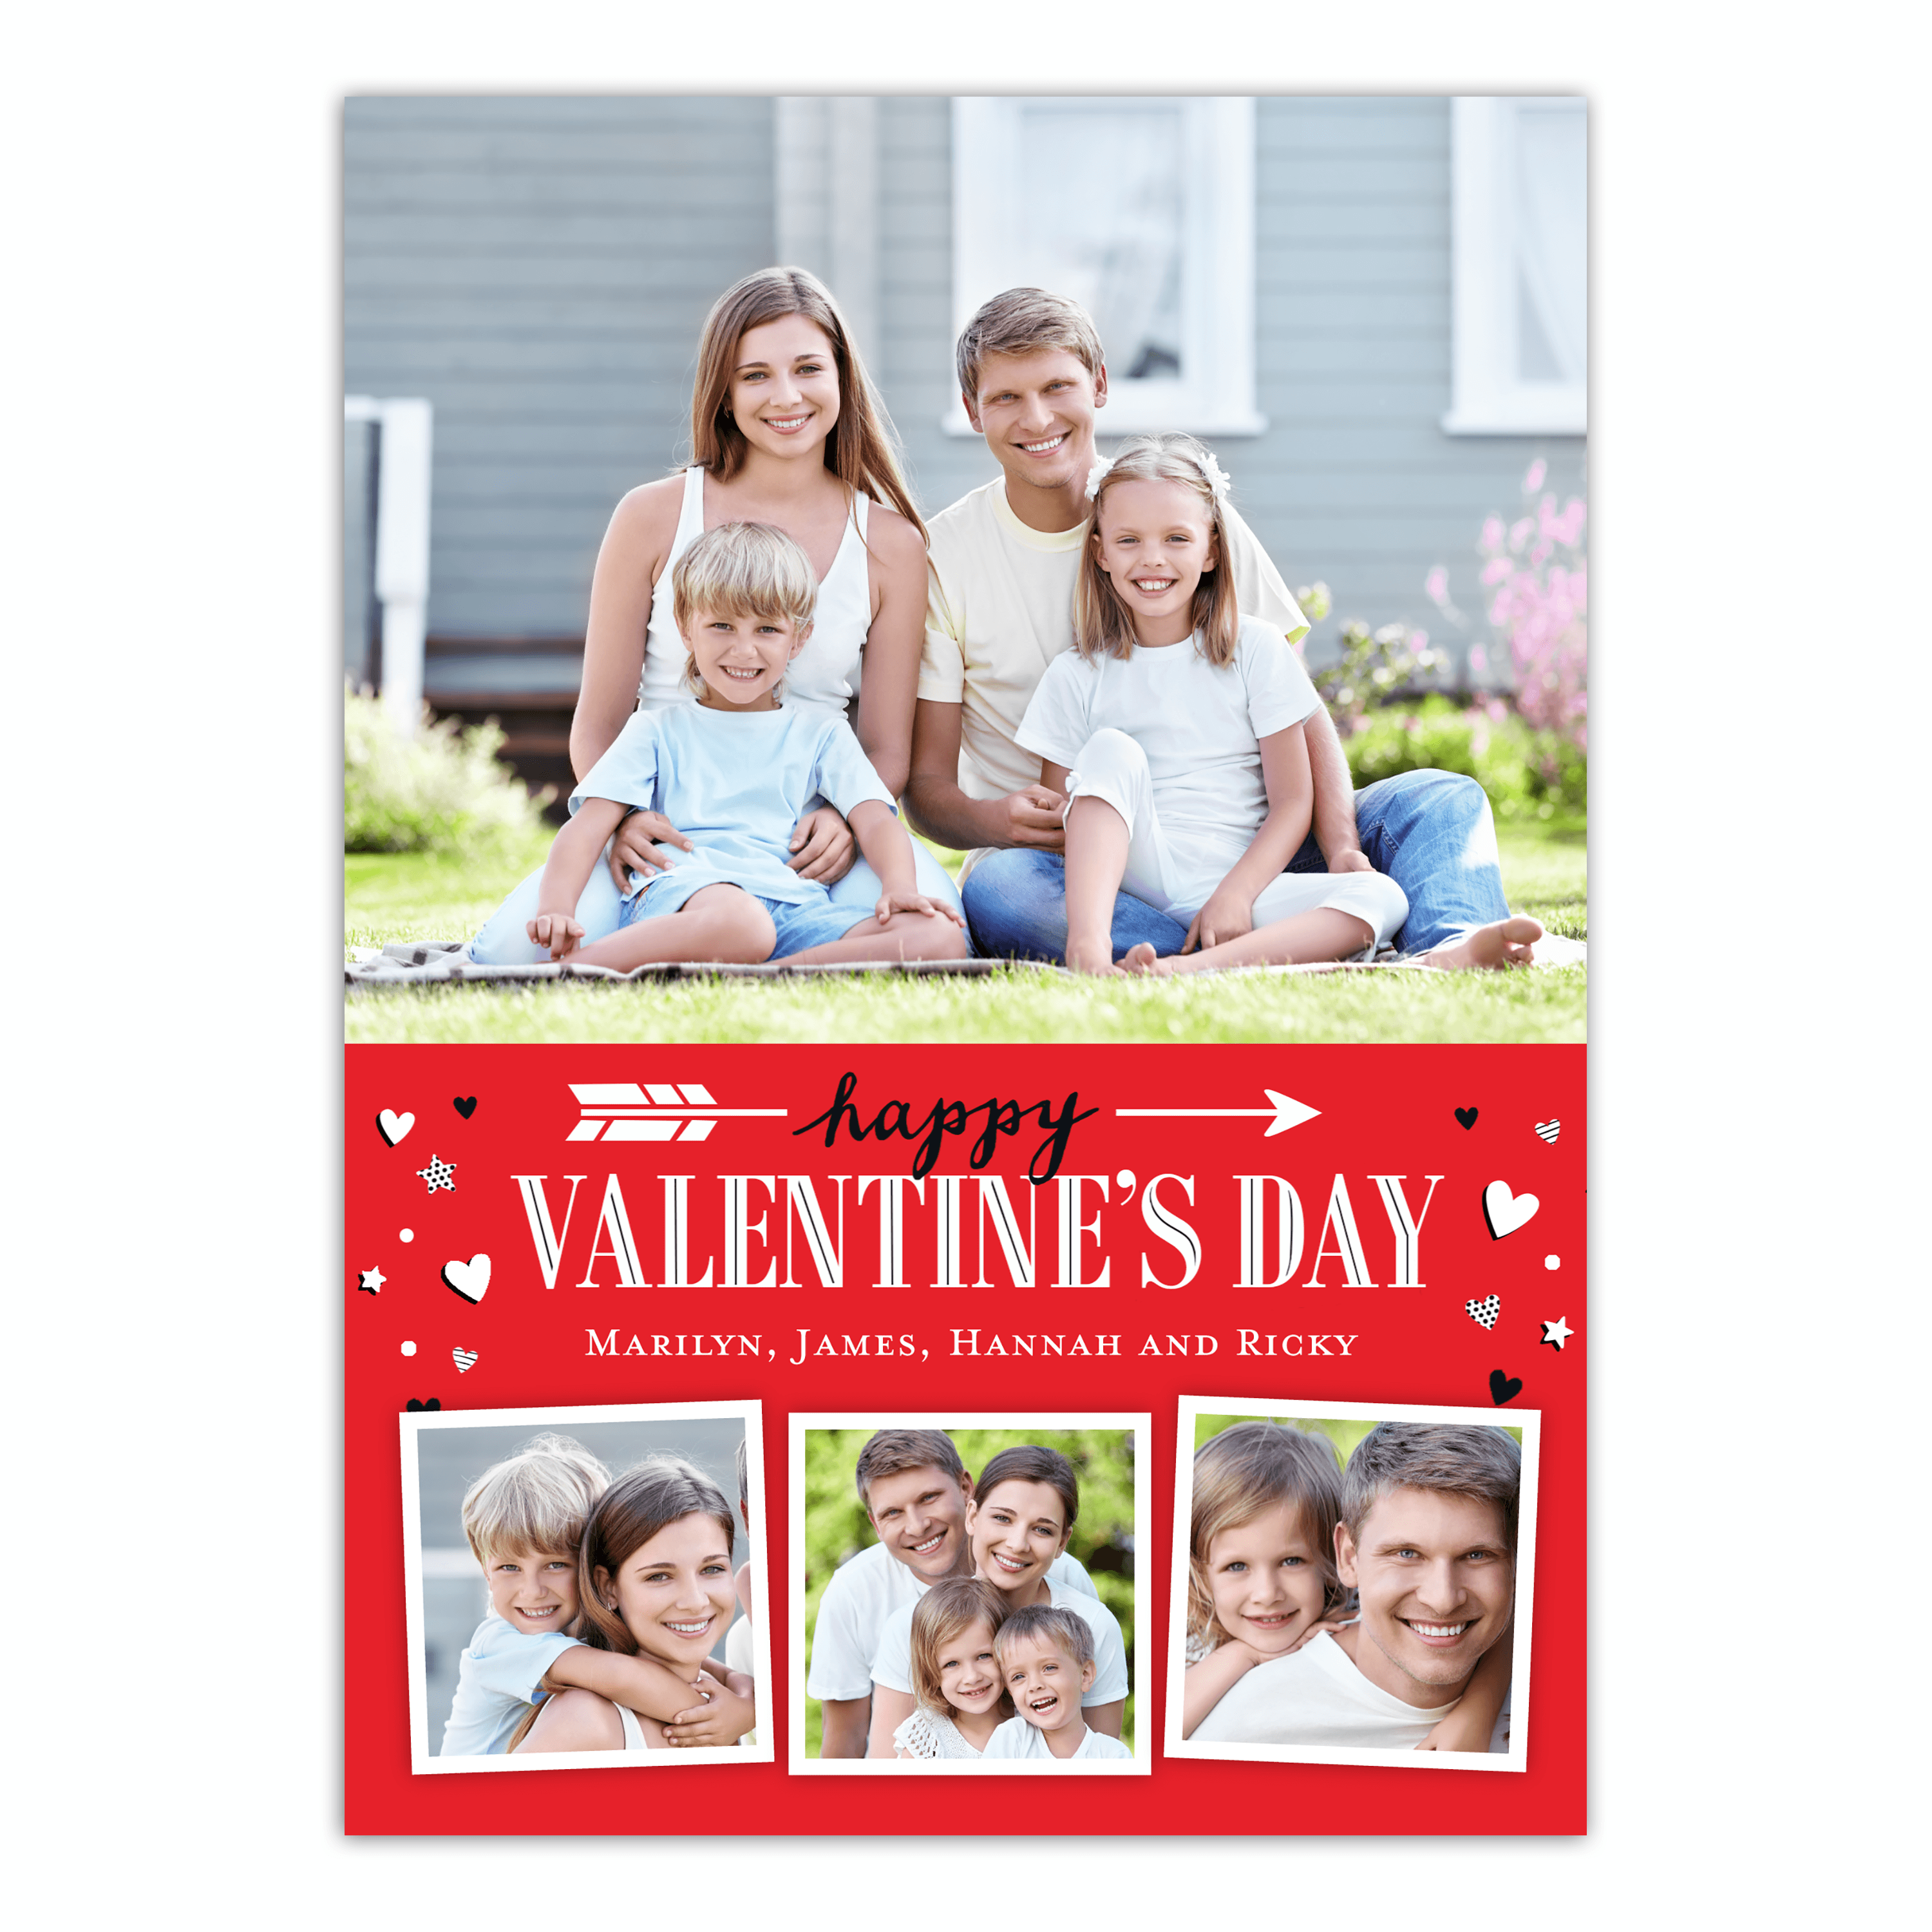 Personalized Valentines Day Greeting Card - Playful Arrow